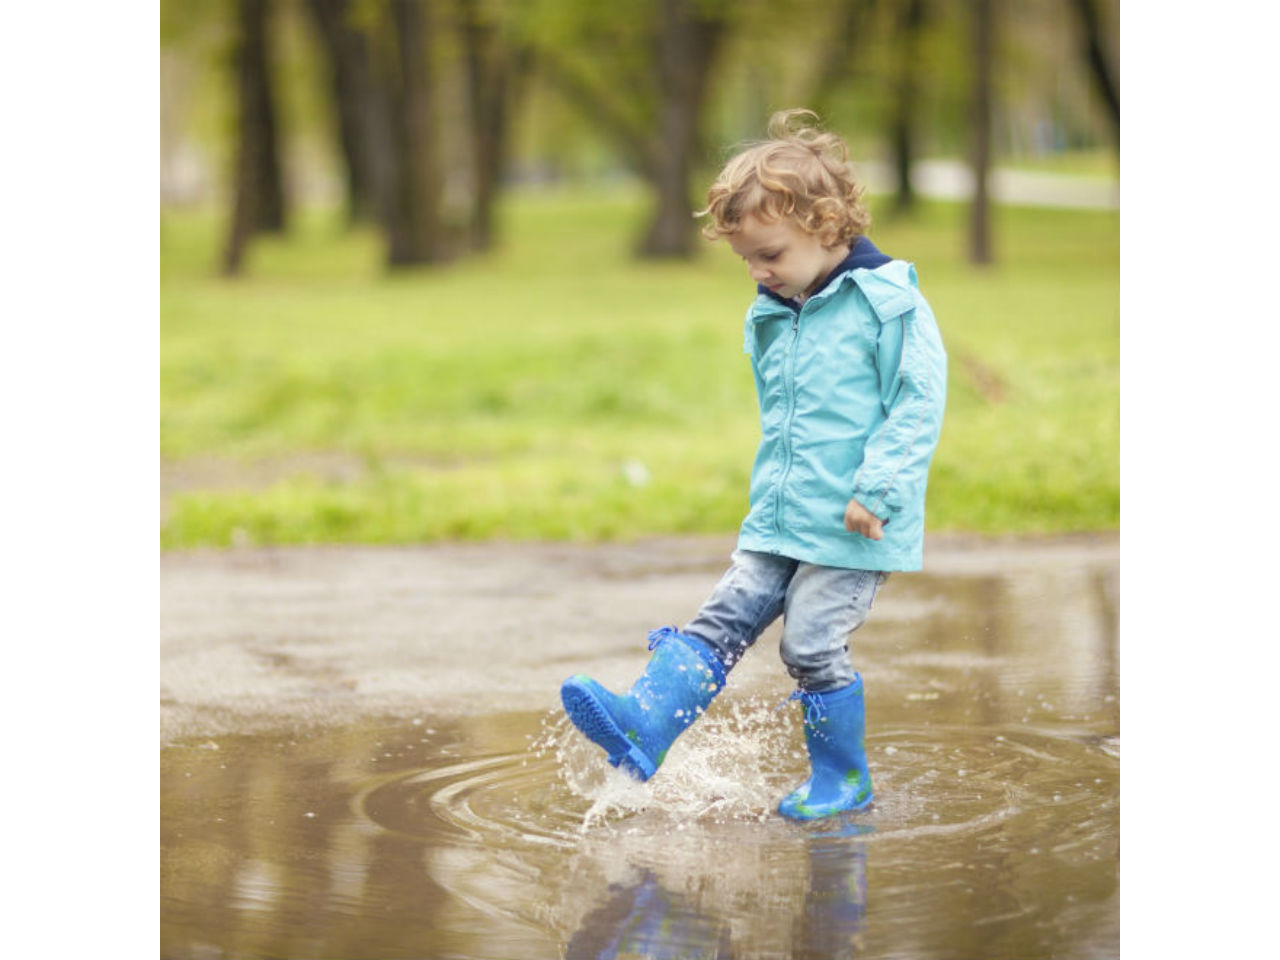 Why Toddlers Needs Lessons About >> What toddlers learn from water play - Today's Parent